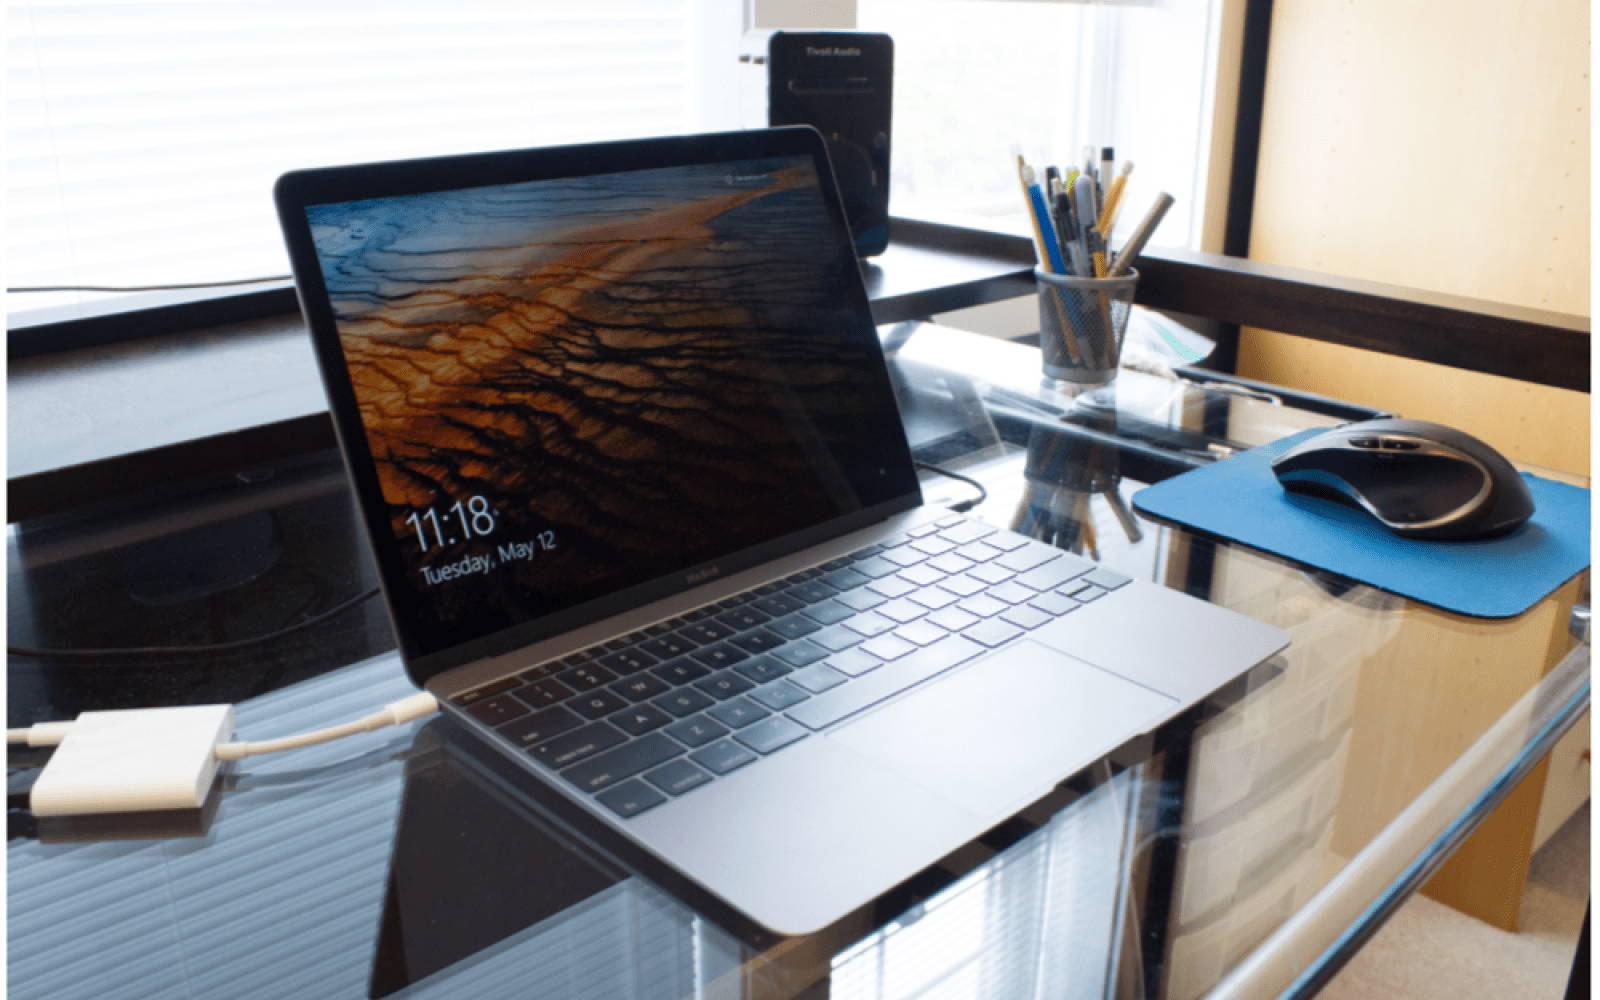 Early look at Windows 10 on the new Retina MacBook says it runs better than OS X